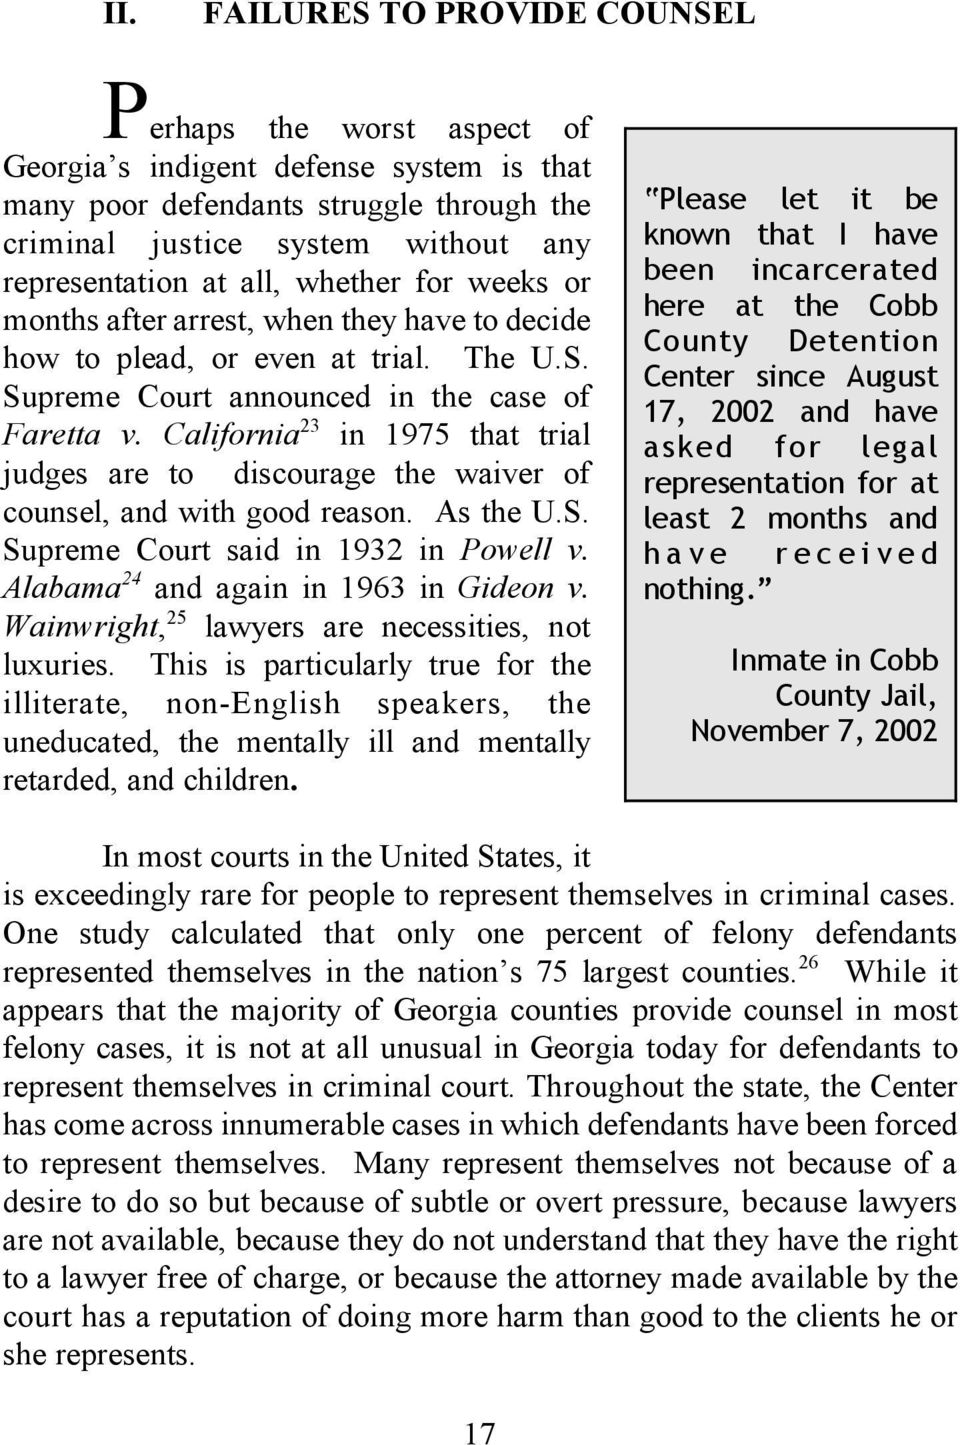 California 23 in 1975 that trial judges are to discourage the waiver of counsel, and with good reason. As the U.S. Supreme Court said in 1932 in Powell v. Alabama 24 and again in 1963 in Gideon v.